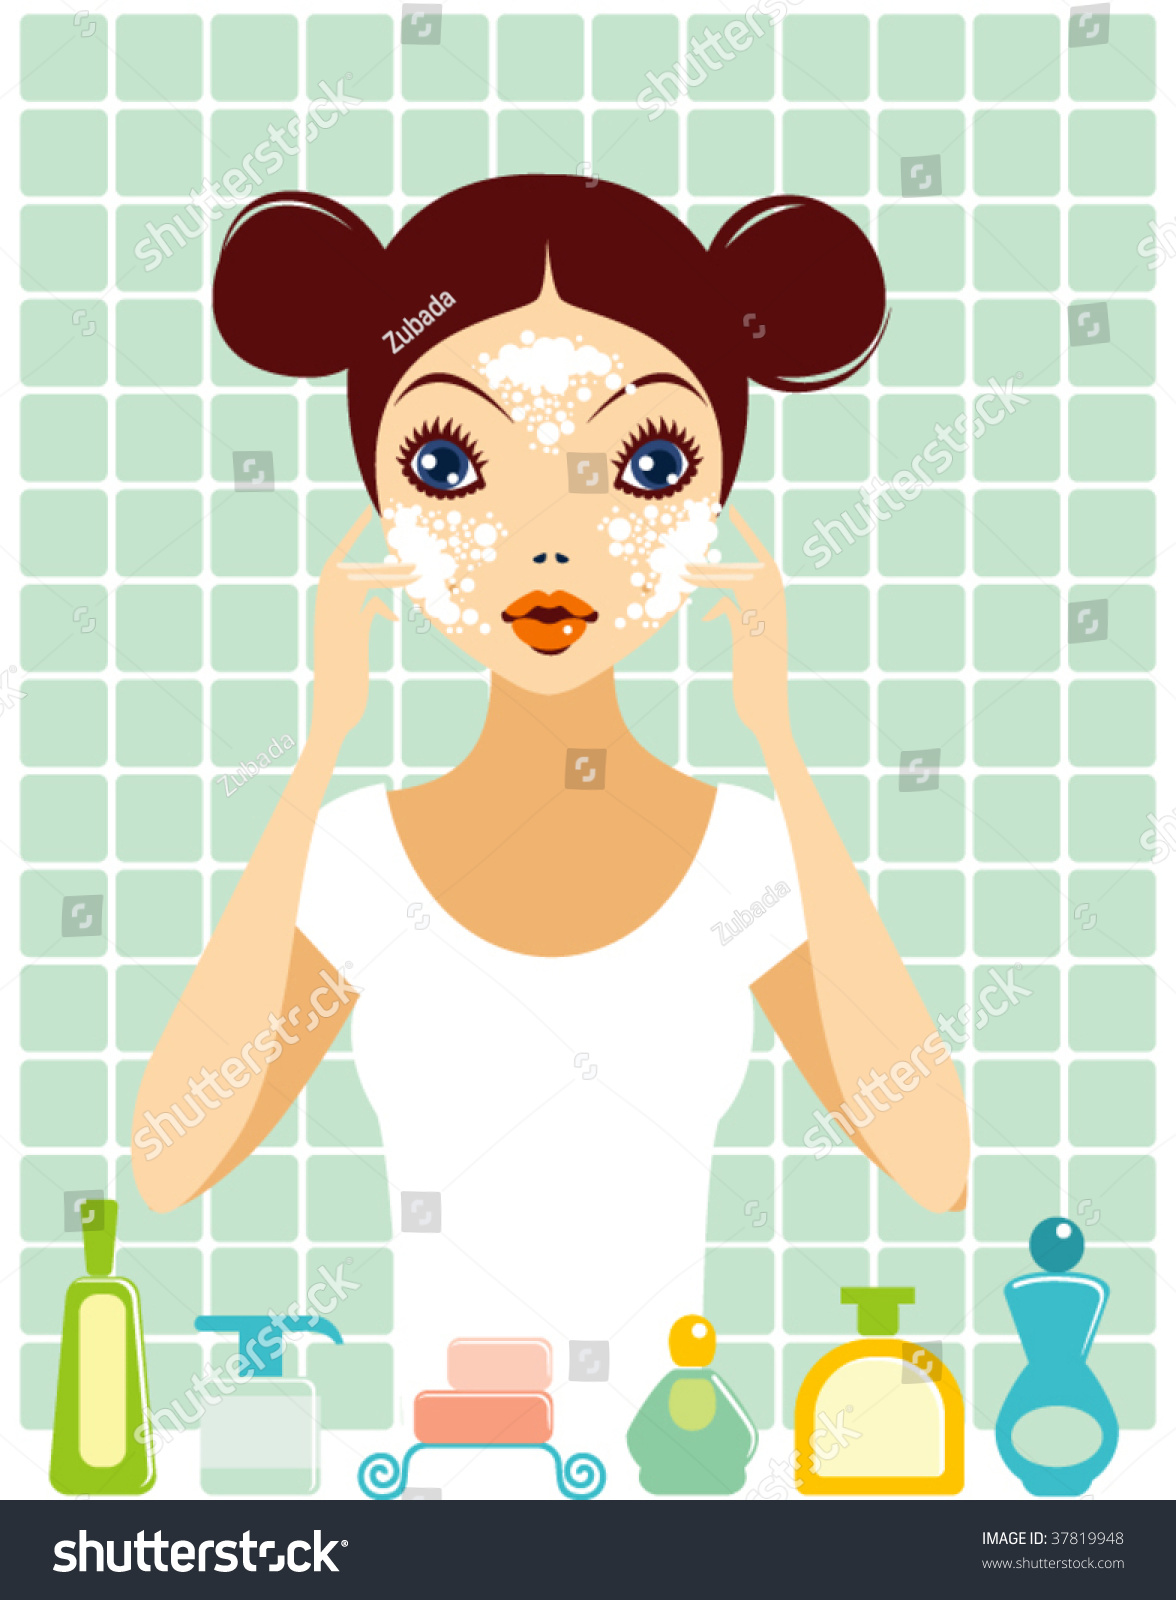 Washing face clipart